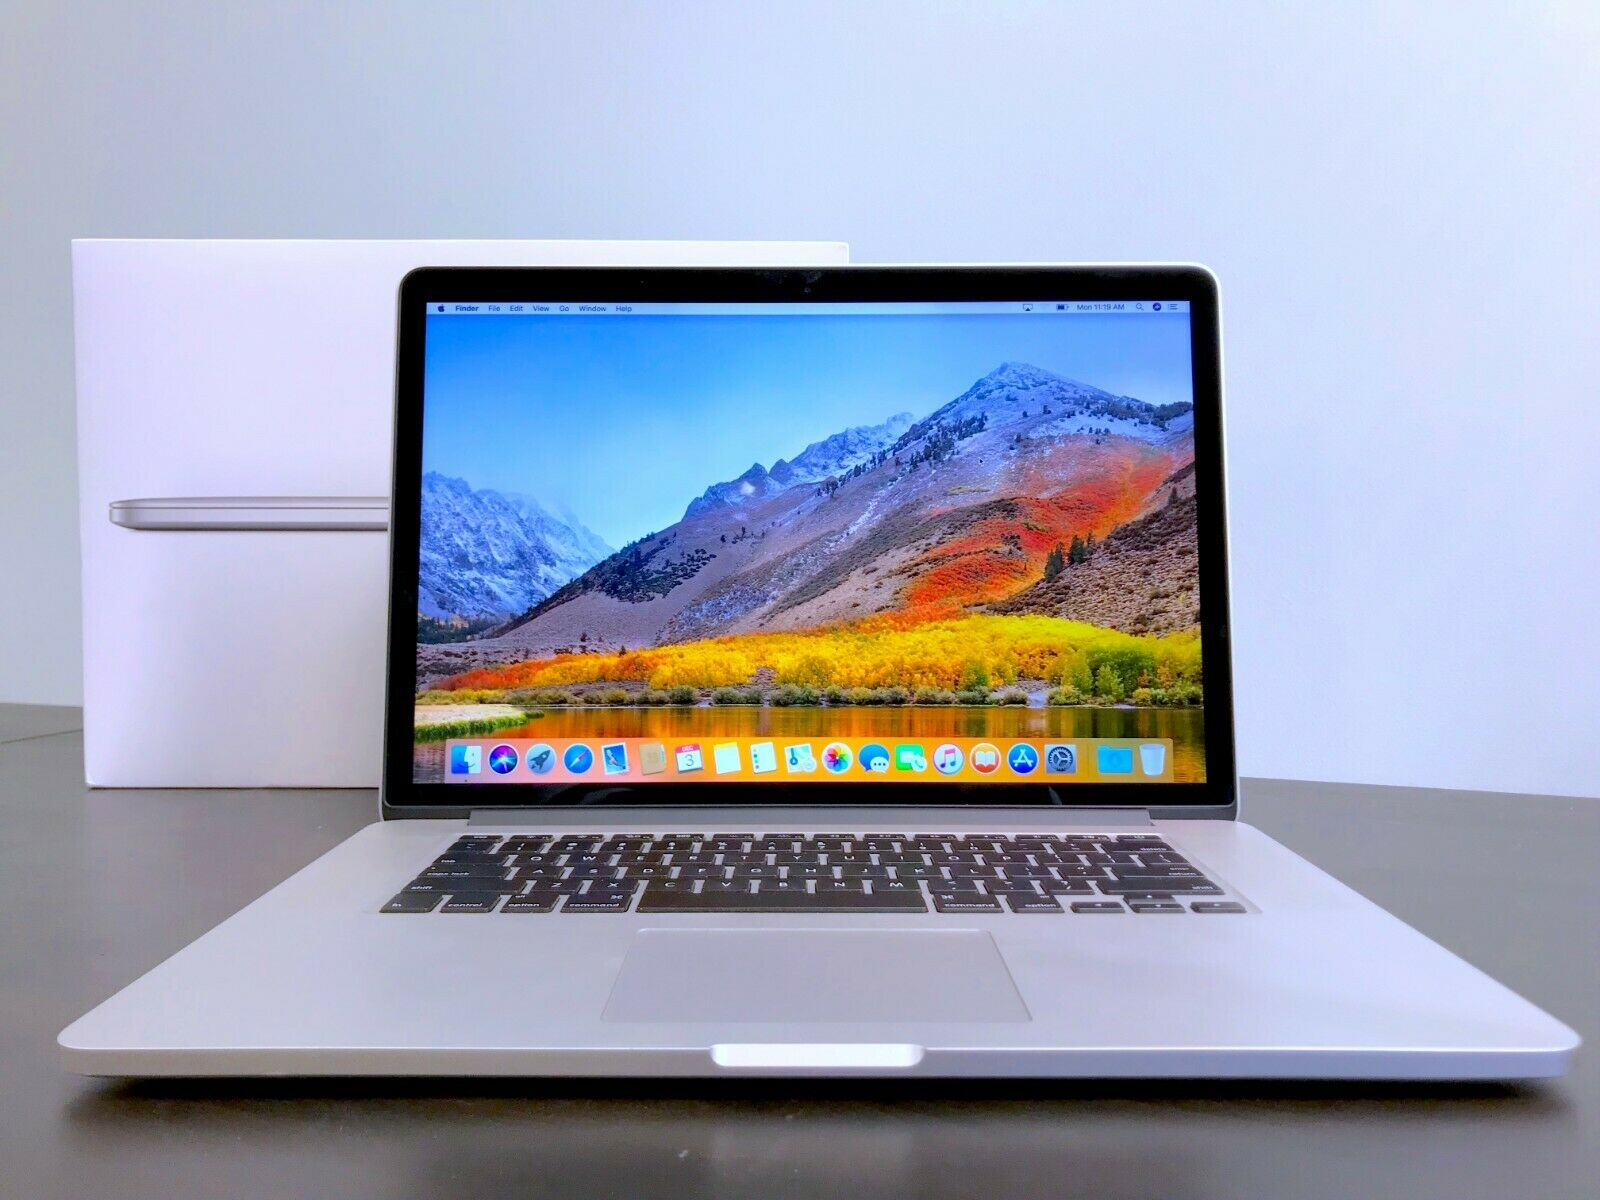 Apple MacBook Pro 15 / 512GB SSD / 3.3GHz INTEL i7 TURBO / RETINA / WARRANTY. Buy it now for 879.00